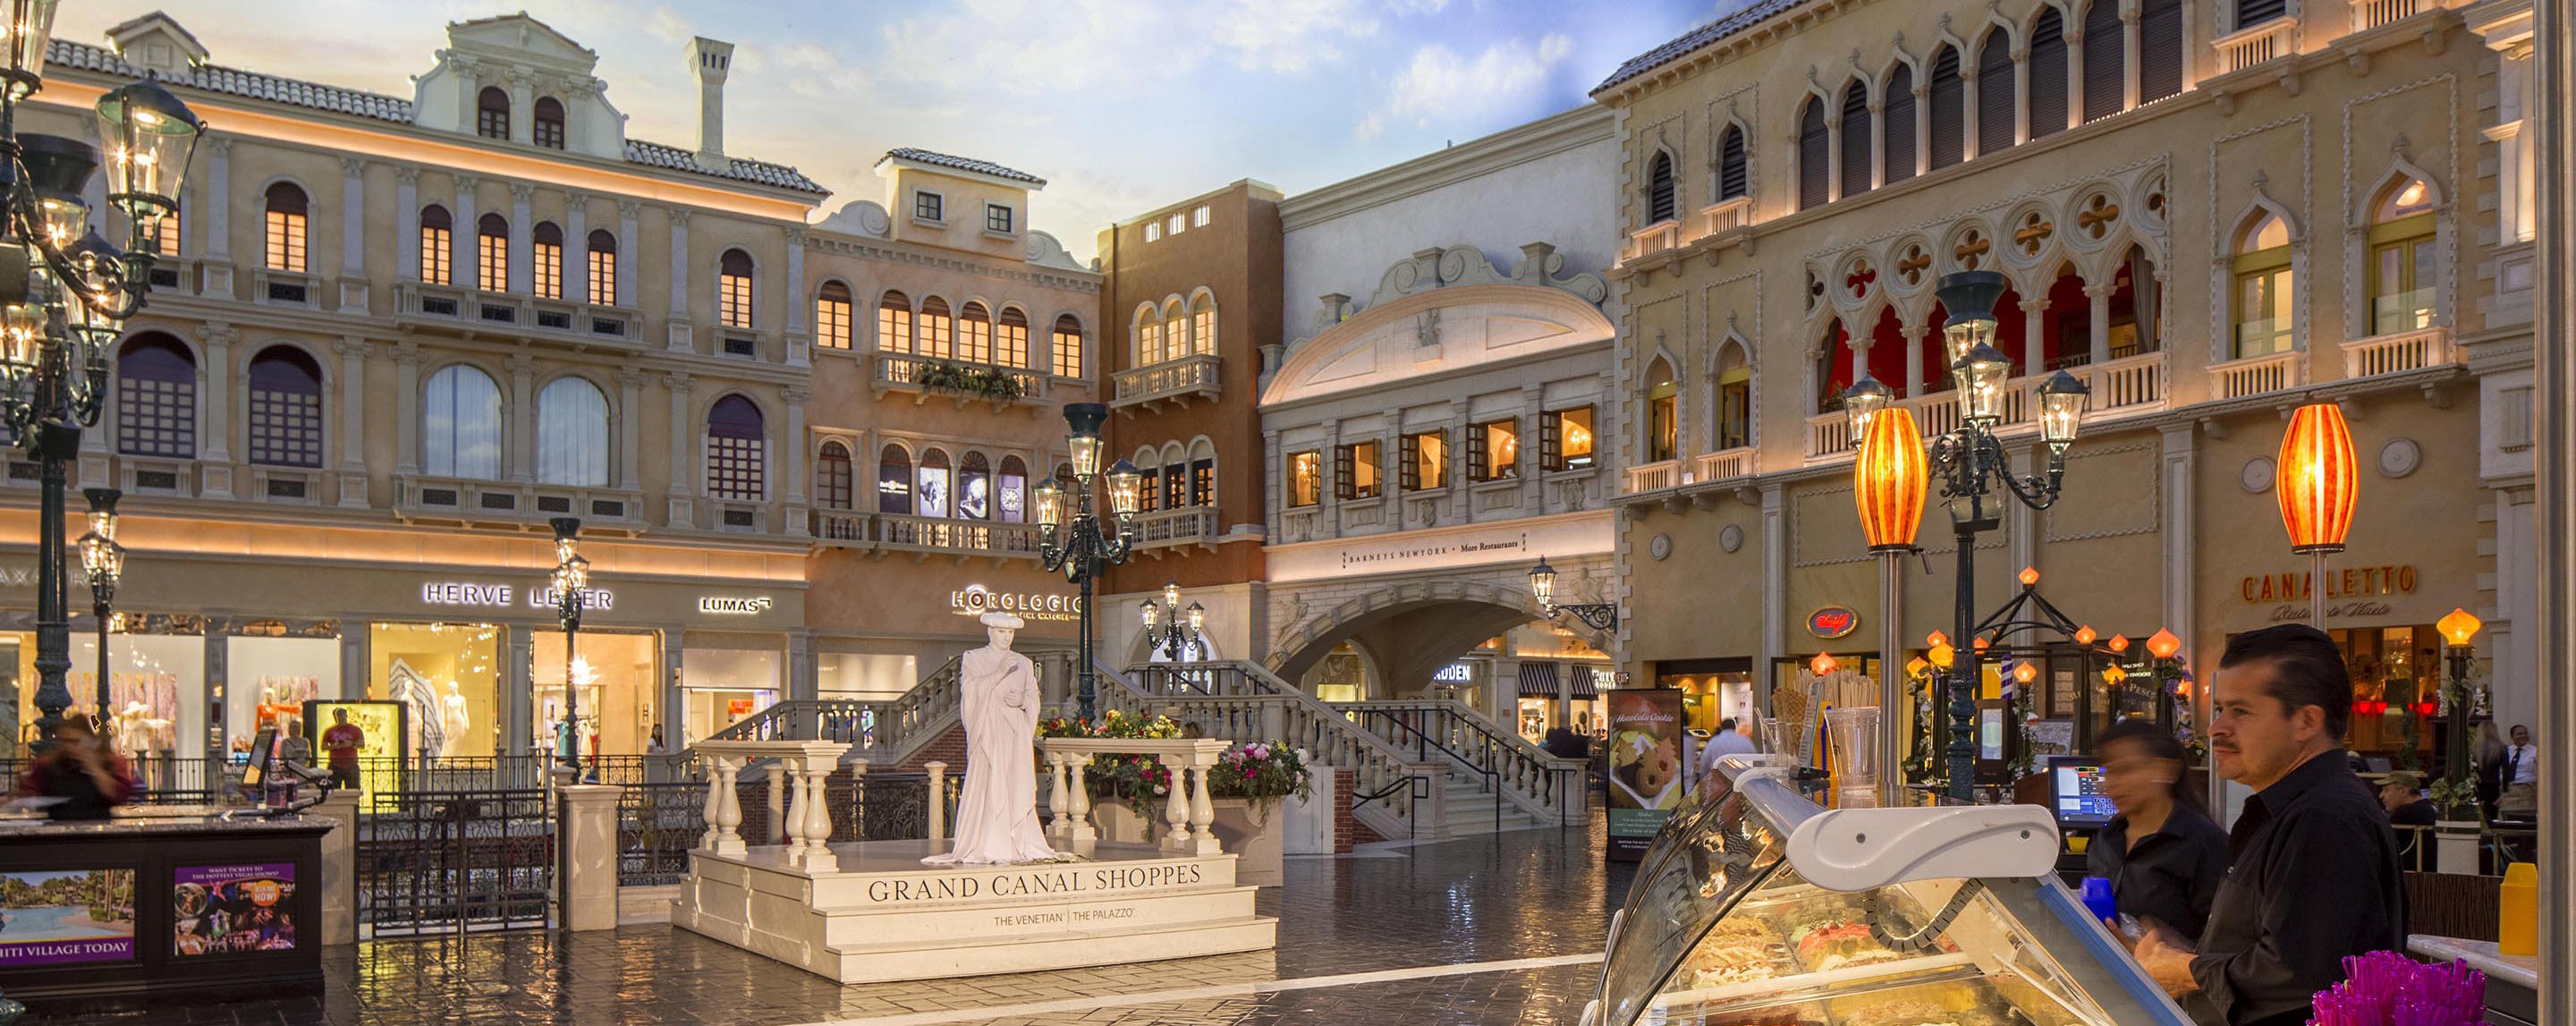 Shoppers stroll through the interior common area of the Grand Canal Shoppes that is designed to look like a replica of a small Venetian village.